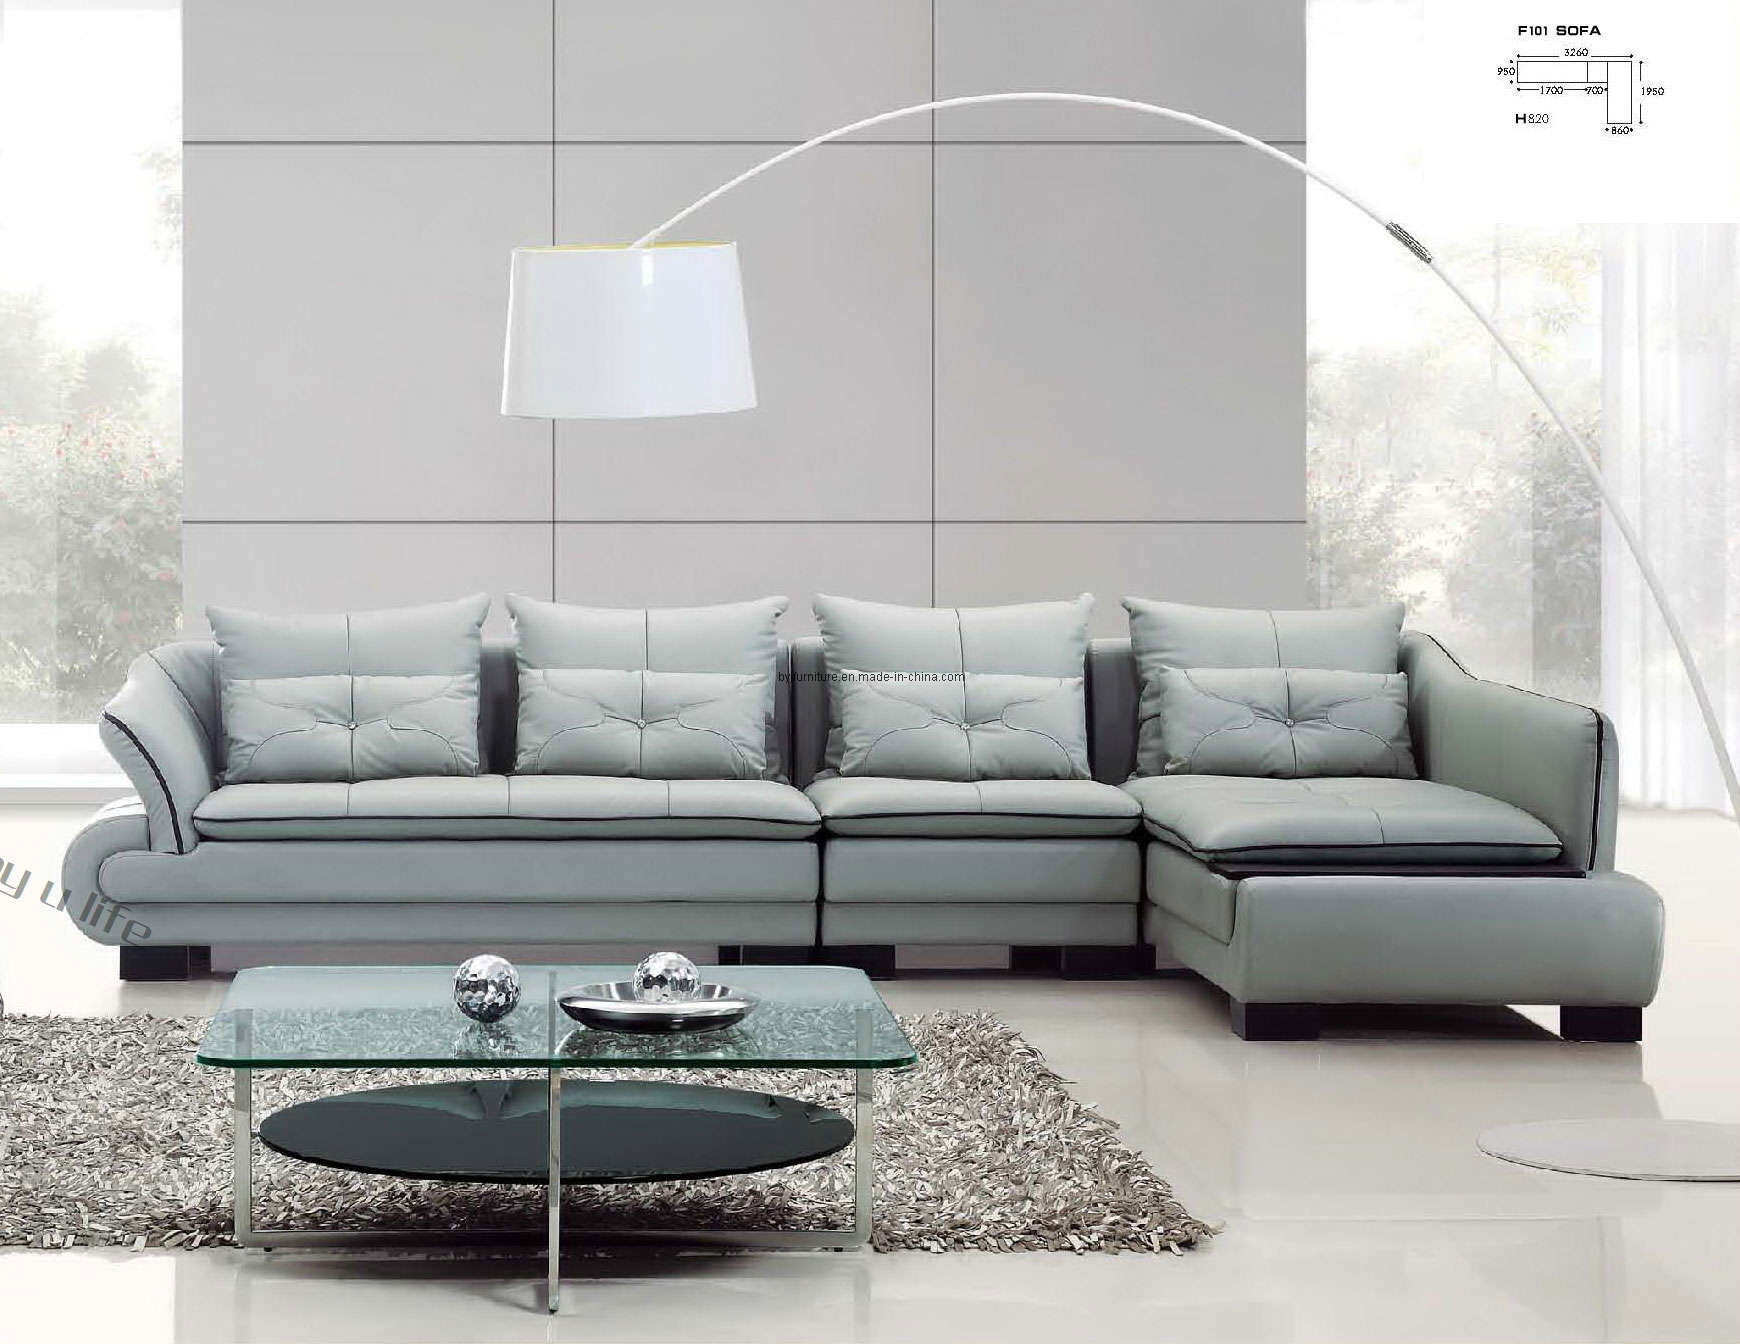 25 latest sofa set designs for living room furniture ideas hgnv